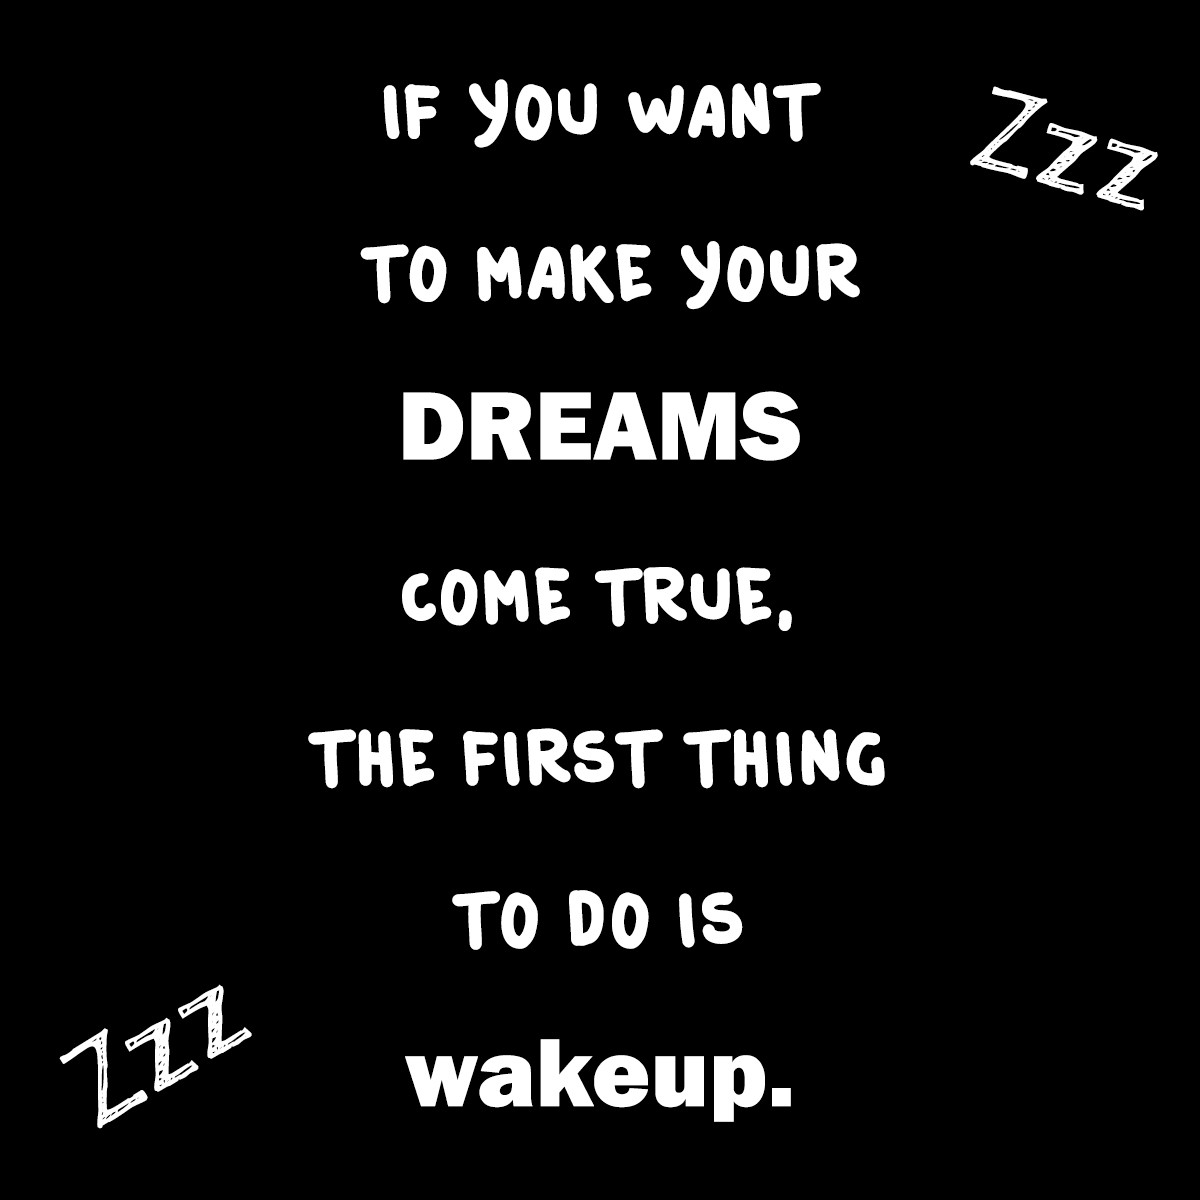 if_you_want_to_make_your_dreams_come_true_the_first_thing_to_do_is_wakeup.jpg